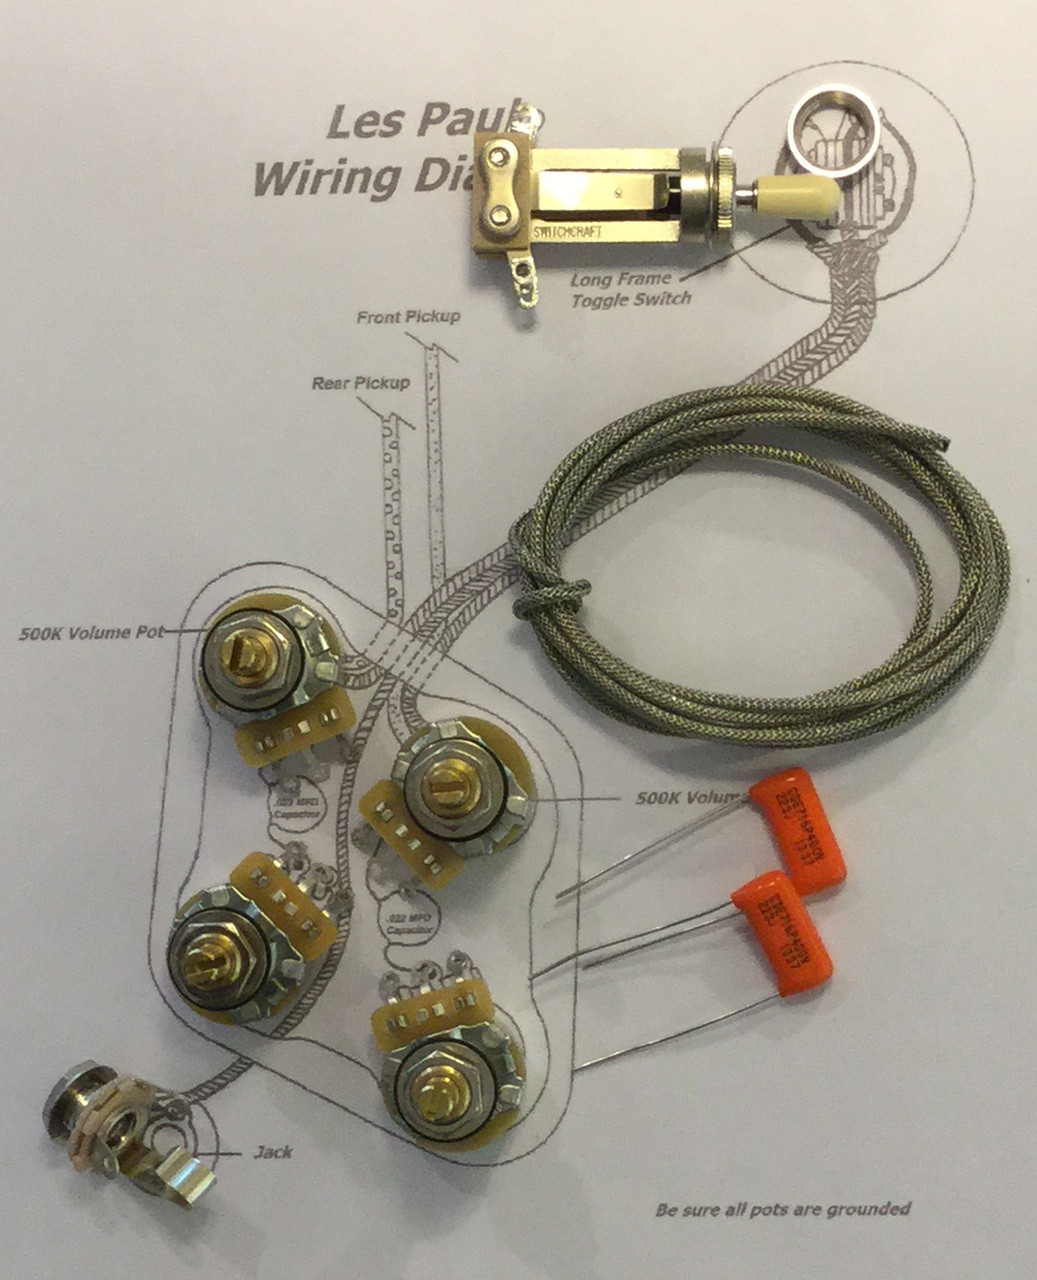 WK_LP_LS OD__58657.1477508836.1280.1280?c=2 wiring kit gibson les paul long shaft cts taot 500kxl pots gibson les paul 3 way switch wiring at gsmportal.co